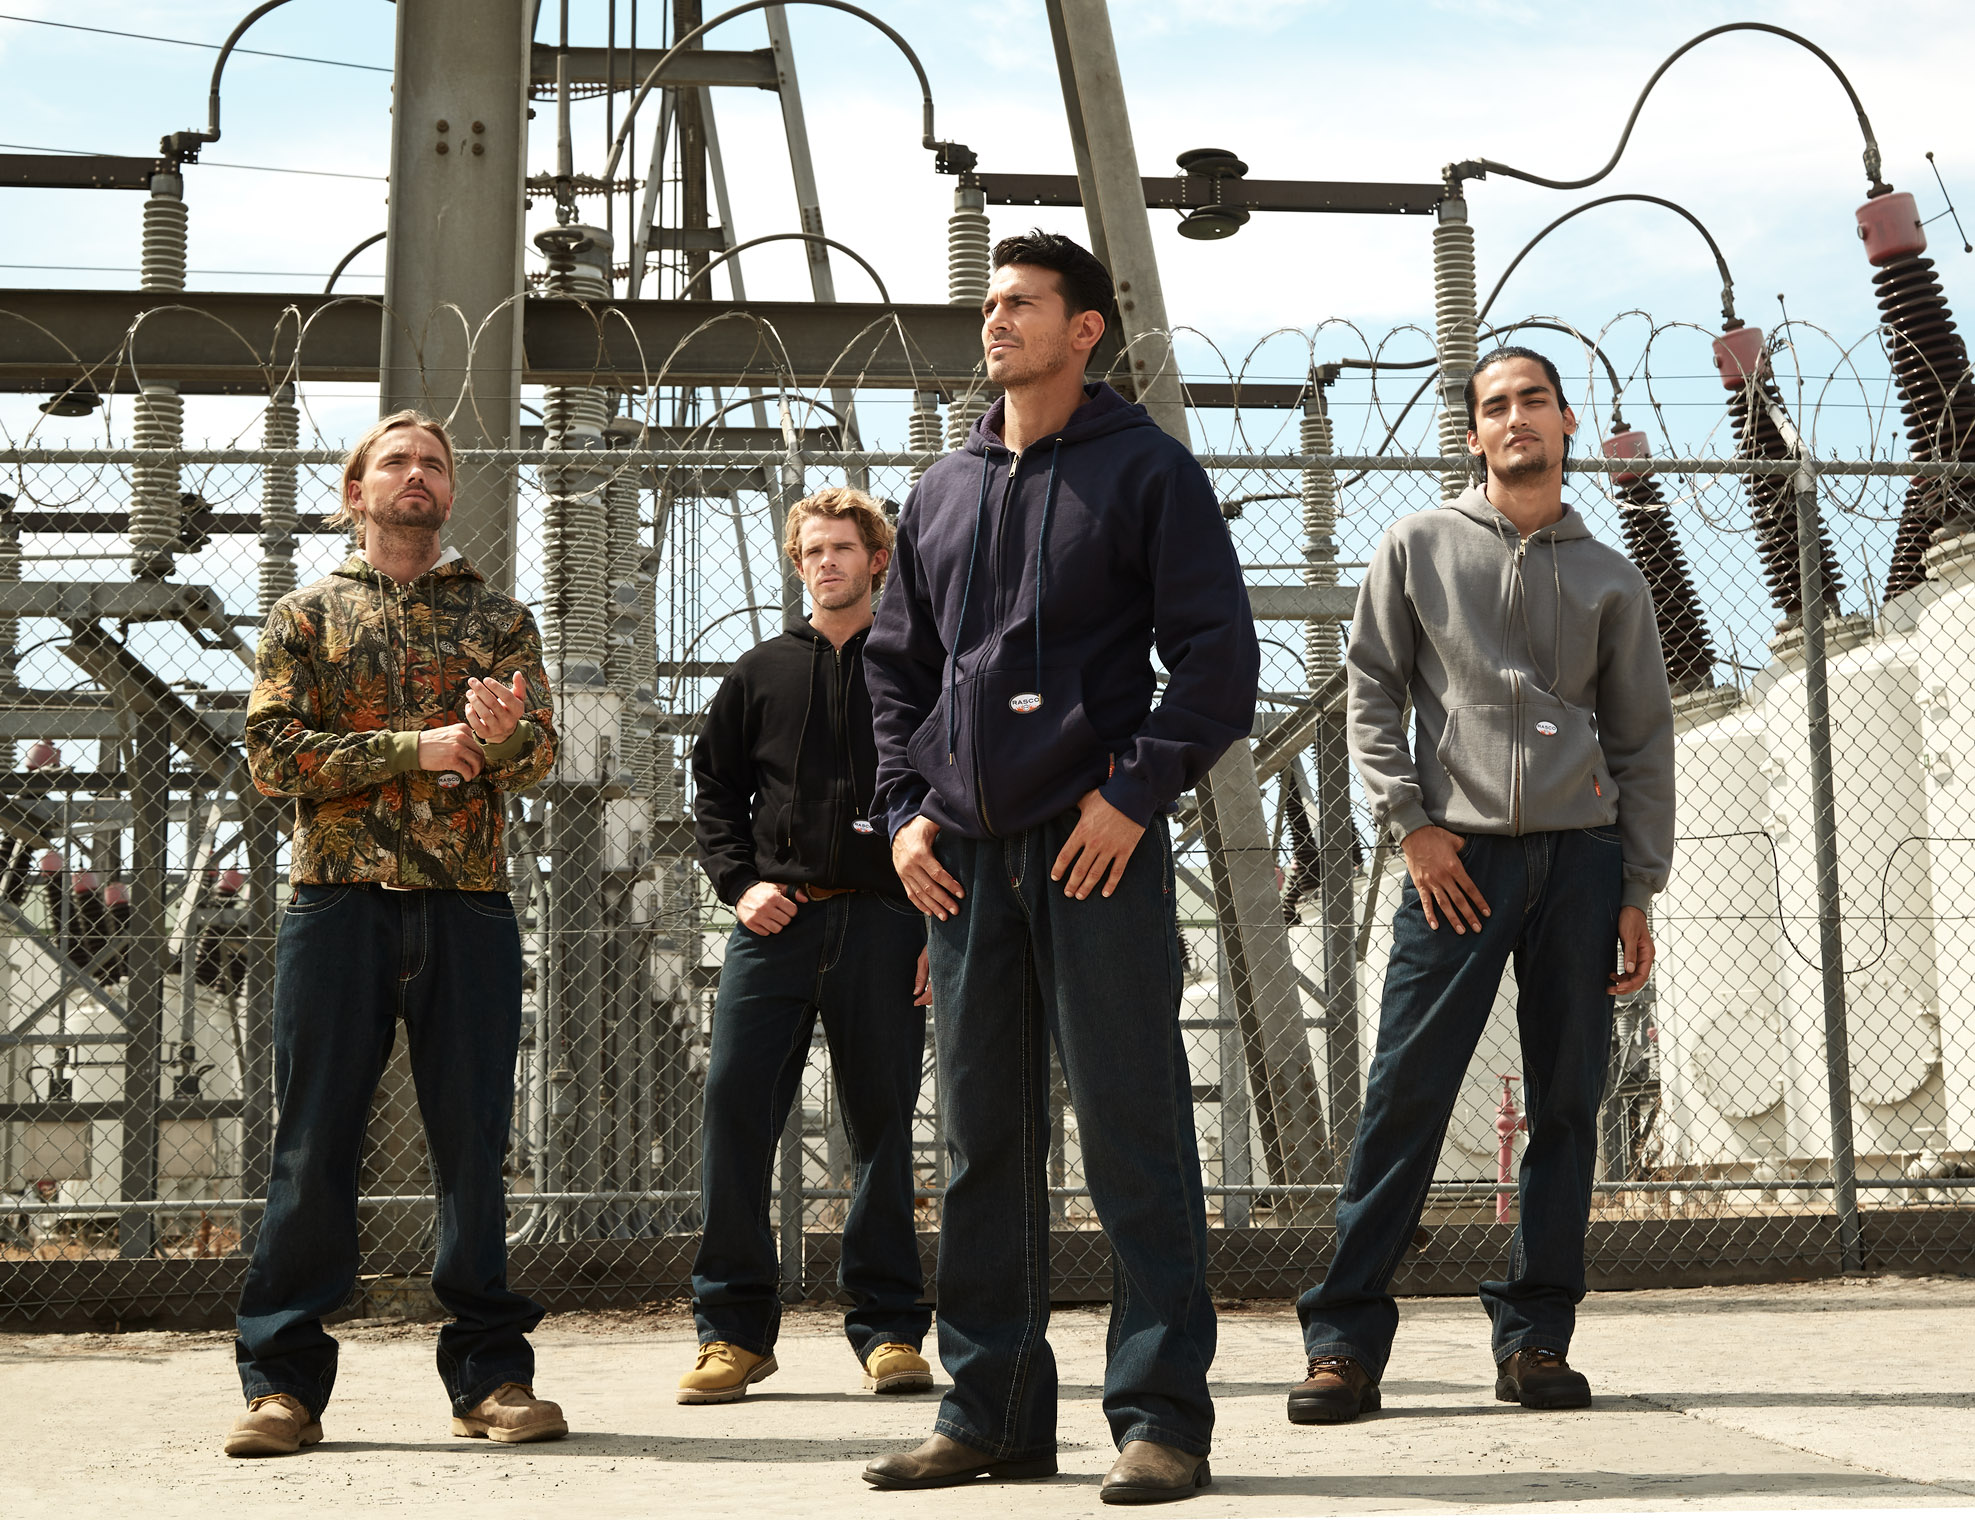 fantastic four work crew in work clothes on construction site ready to work ad campaign